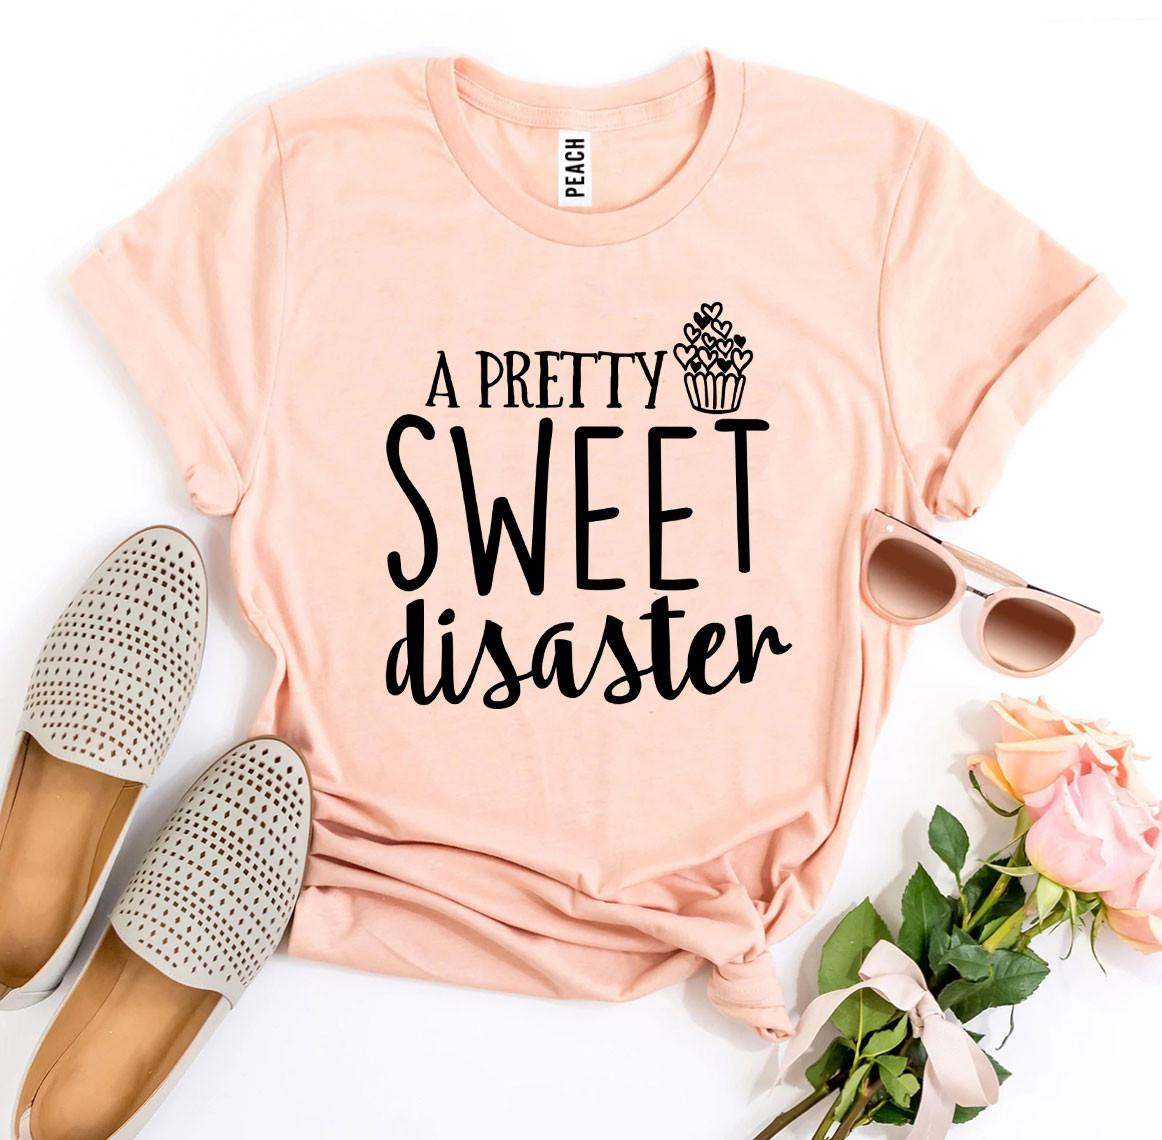 A Pretty Sweet disaster T-shirt